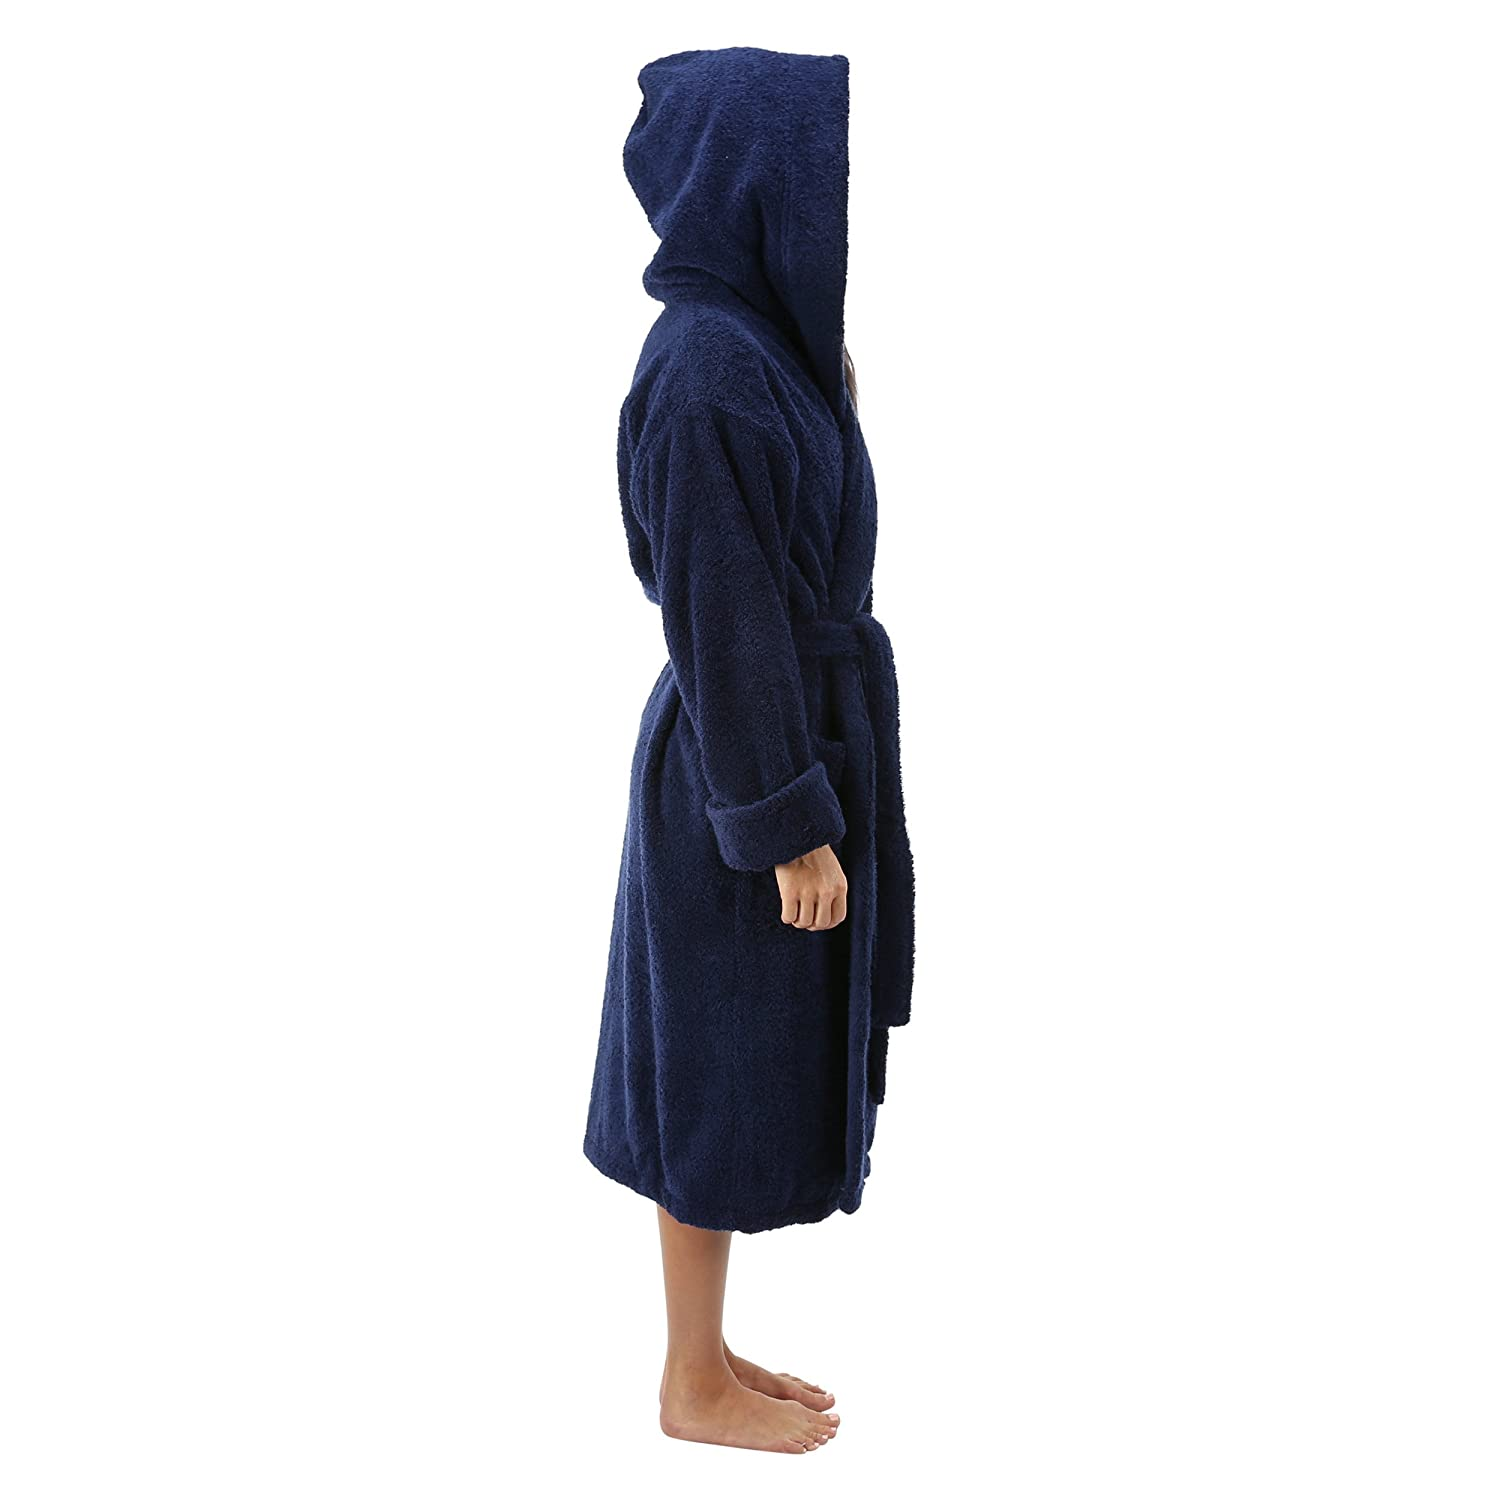 1f33eba381a23 Comfy Robes Women s Deluxe 20 oz. Turkish Cotton Hooded Bathrobe XPR300  larger image